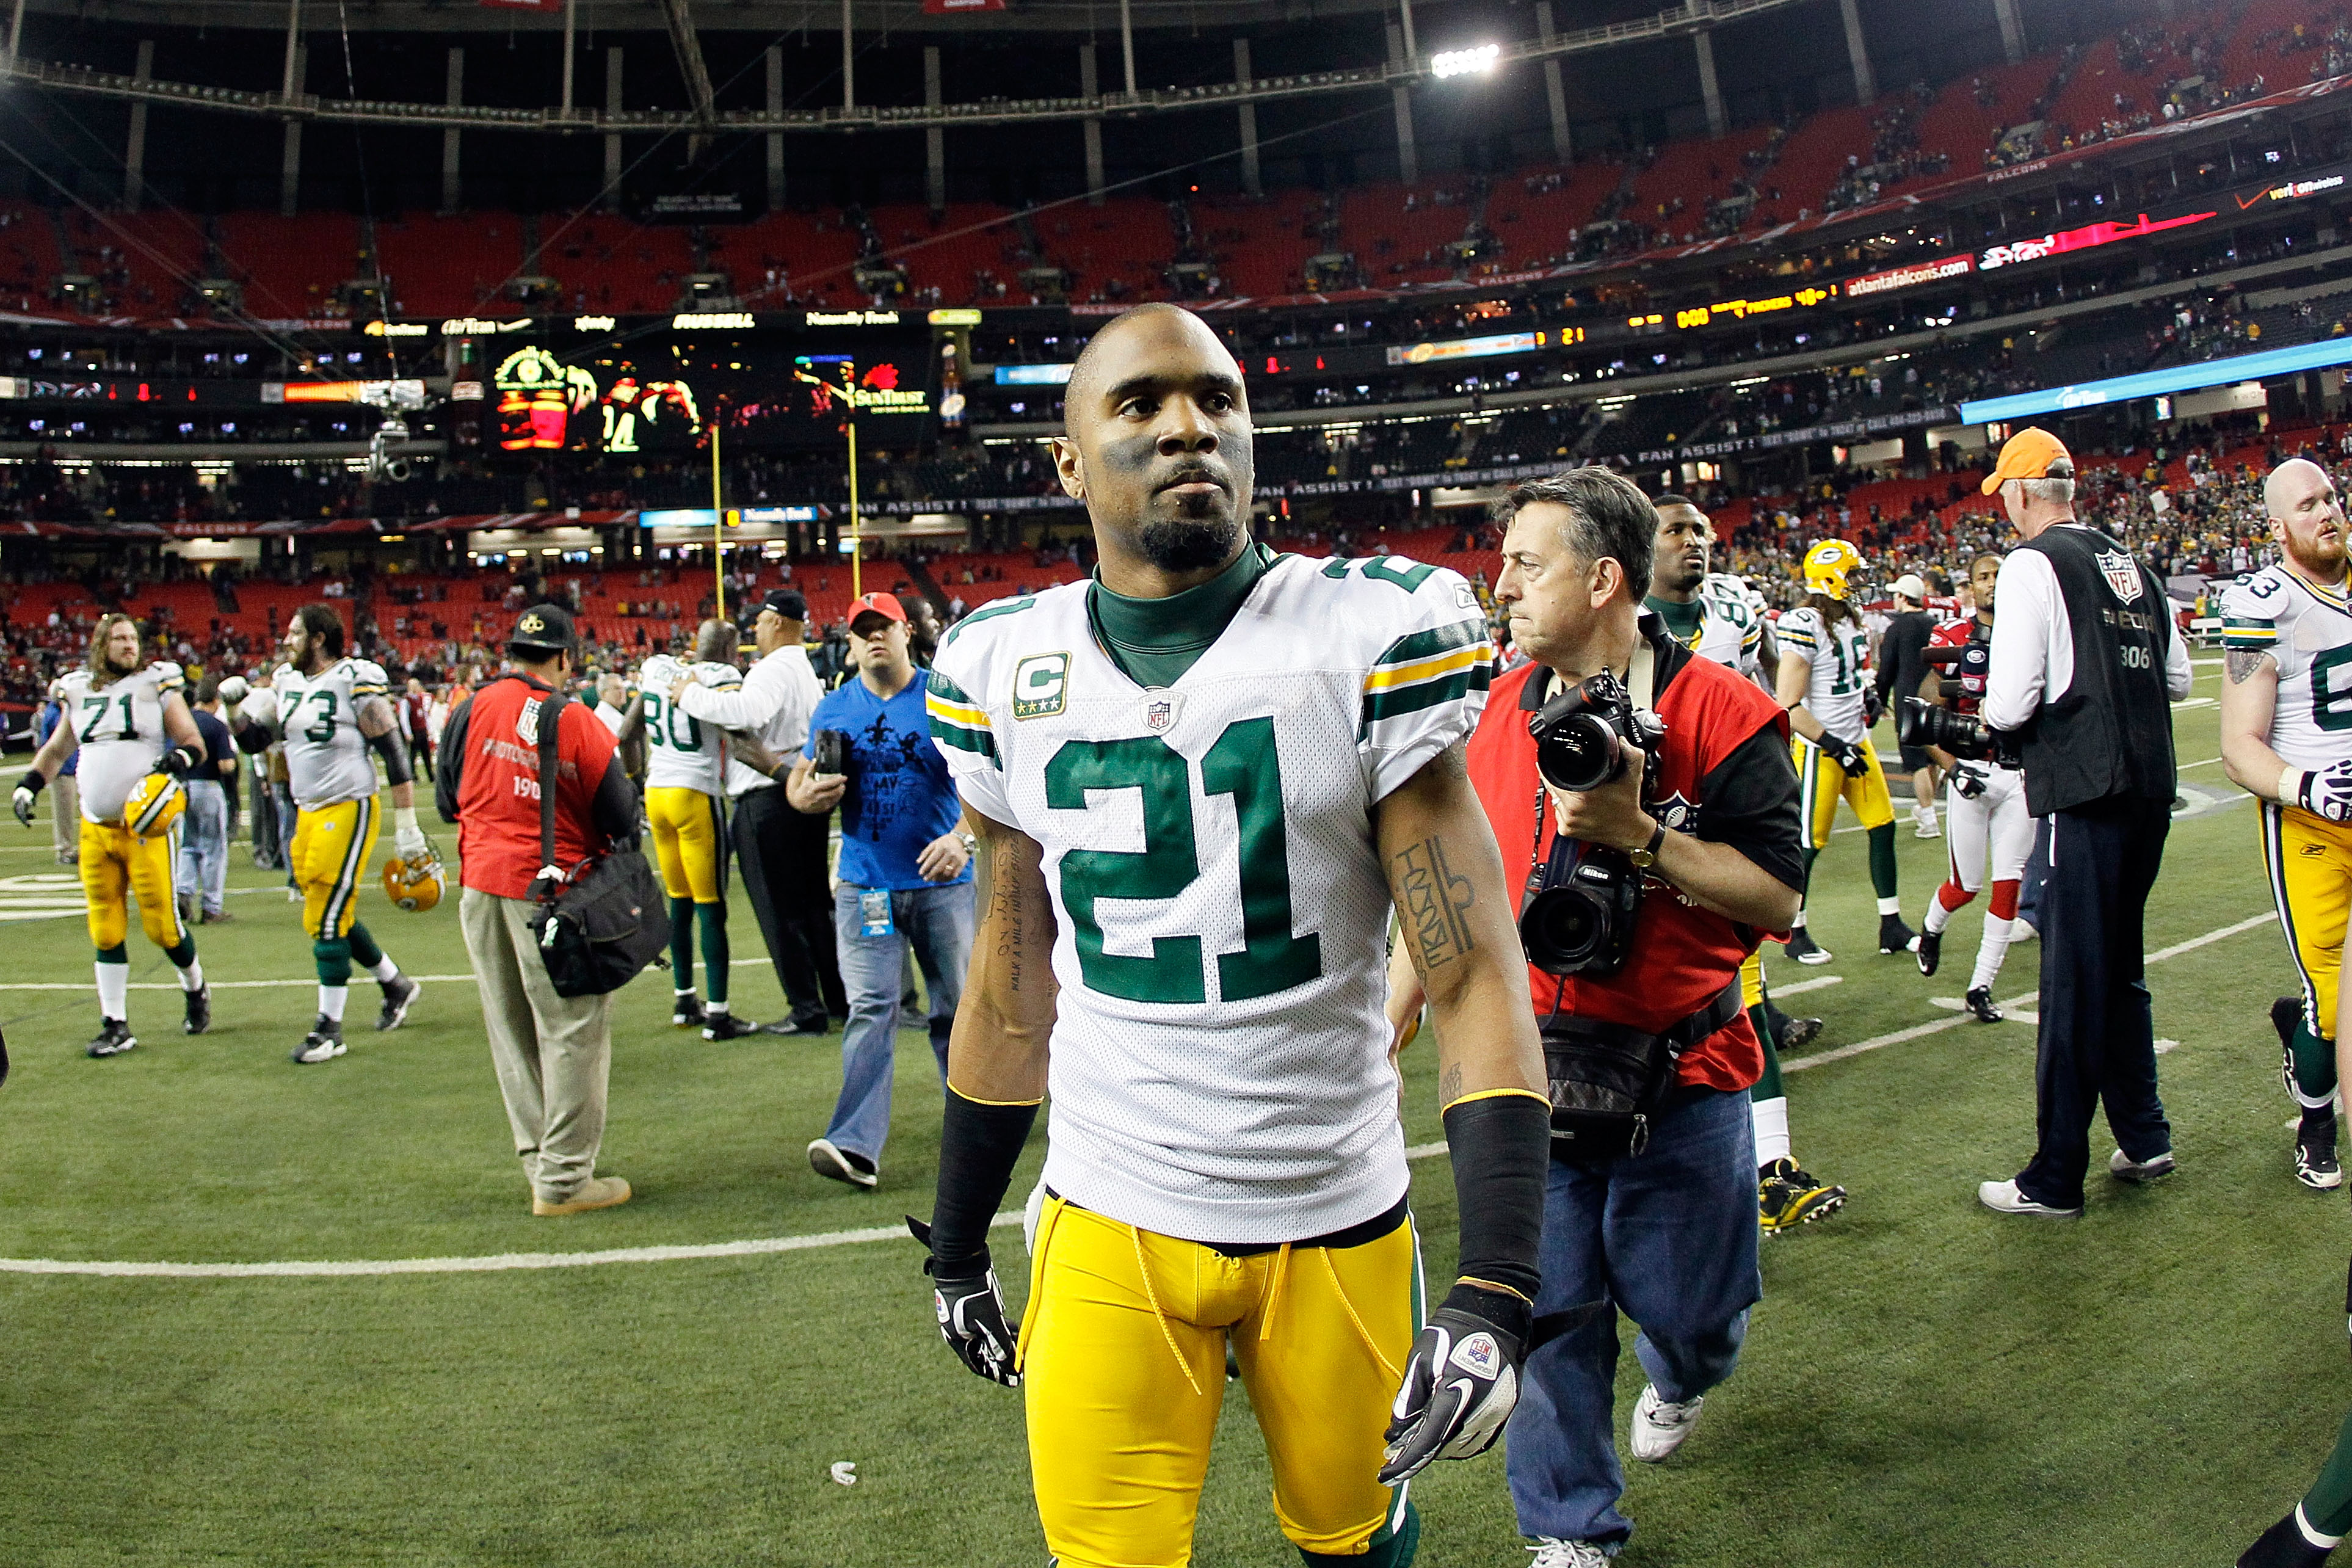 ATLANTA, GA - JANUARY 15:  Charles Woodson #21 of the Green Bay Packers walks off the field after they won 48-21 against the Atlanta Falcons during their 2011 NFC divisional playoff game at Georgia Dome on January 15, 2011 in Atlanta, Georgia.  (Photo by